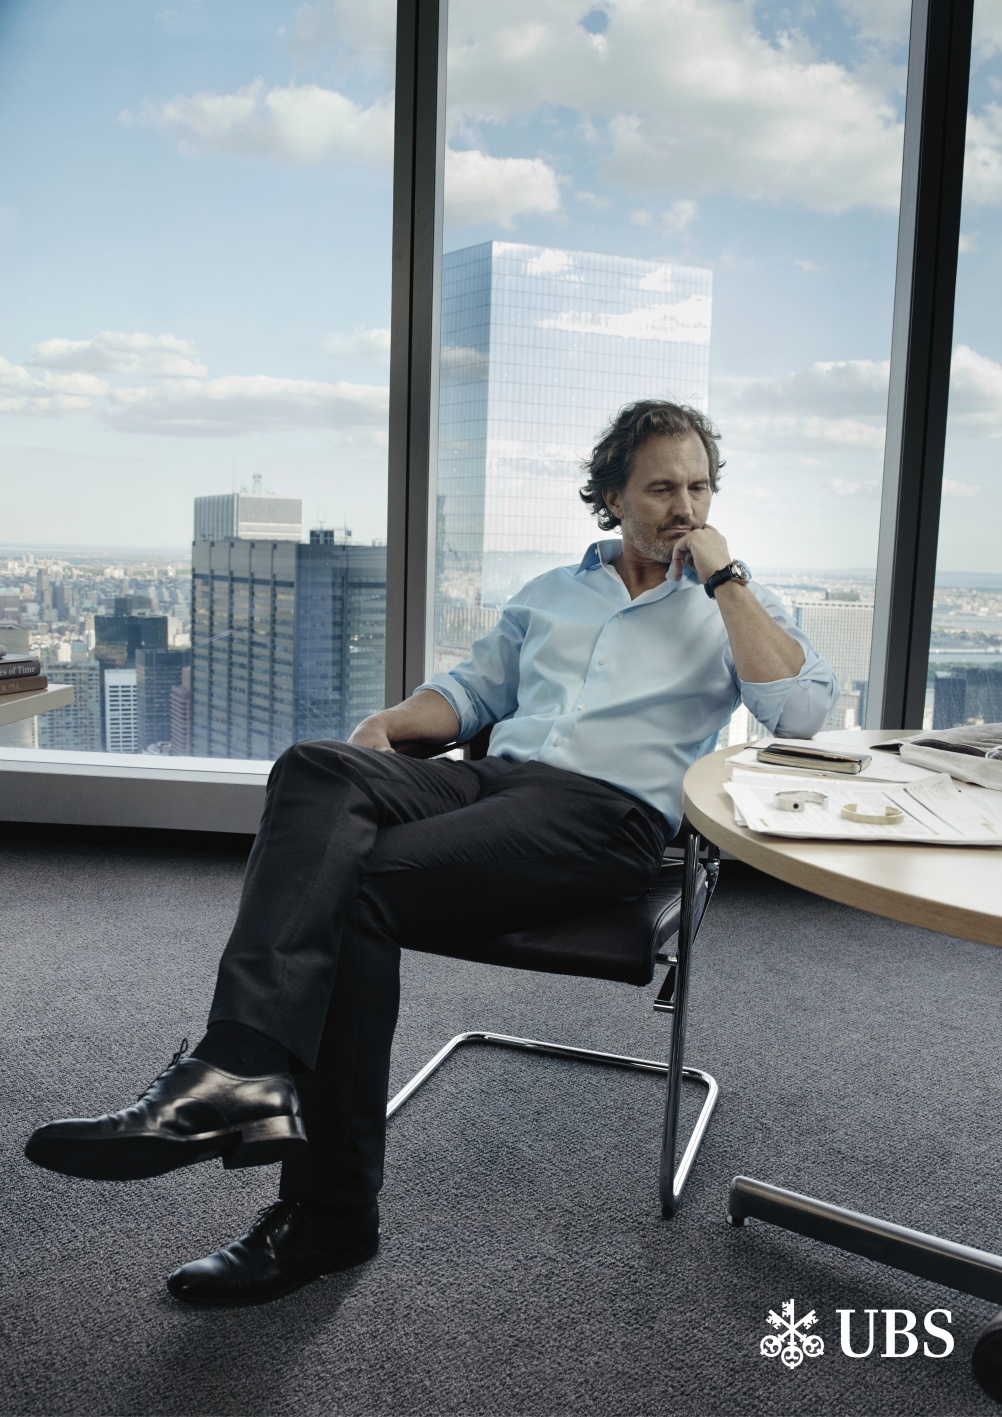 Campaign photography by Annie Leibovitz for the new UBS global brand campaign. © Annie Leibovitz.